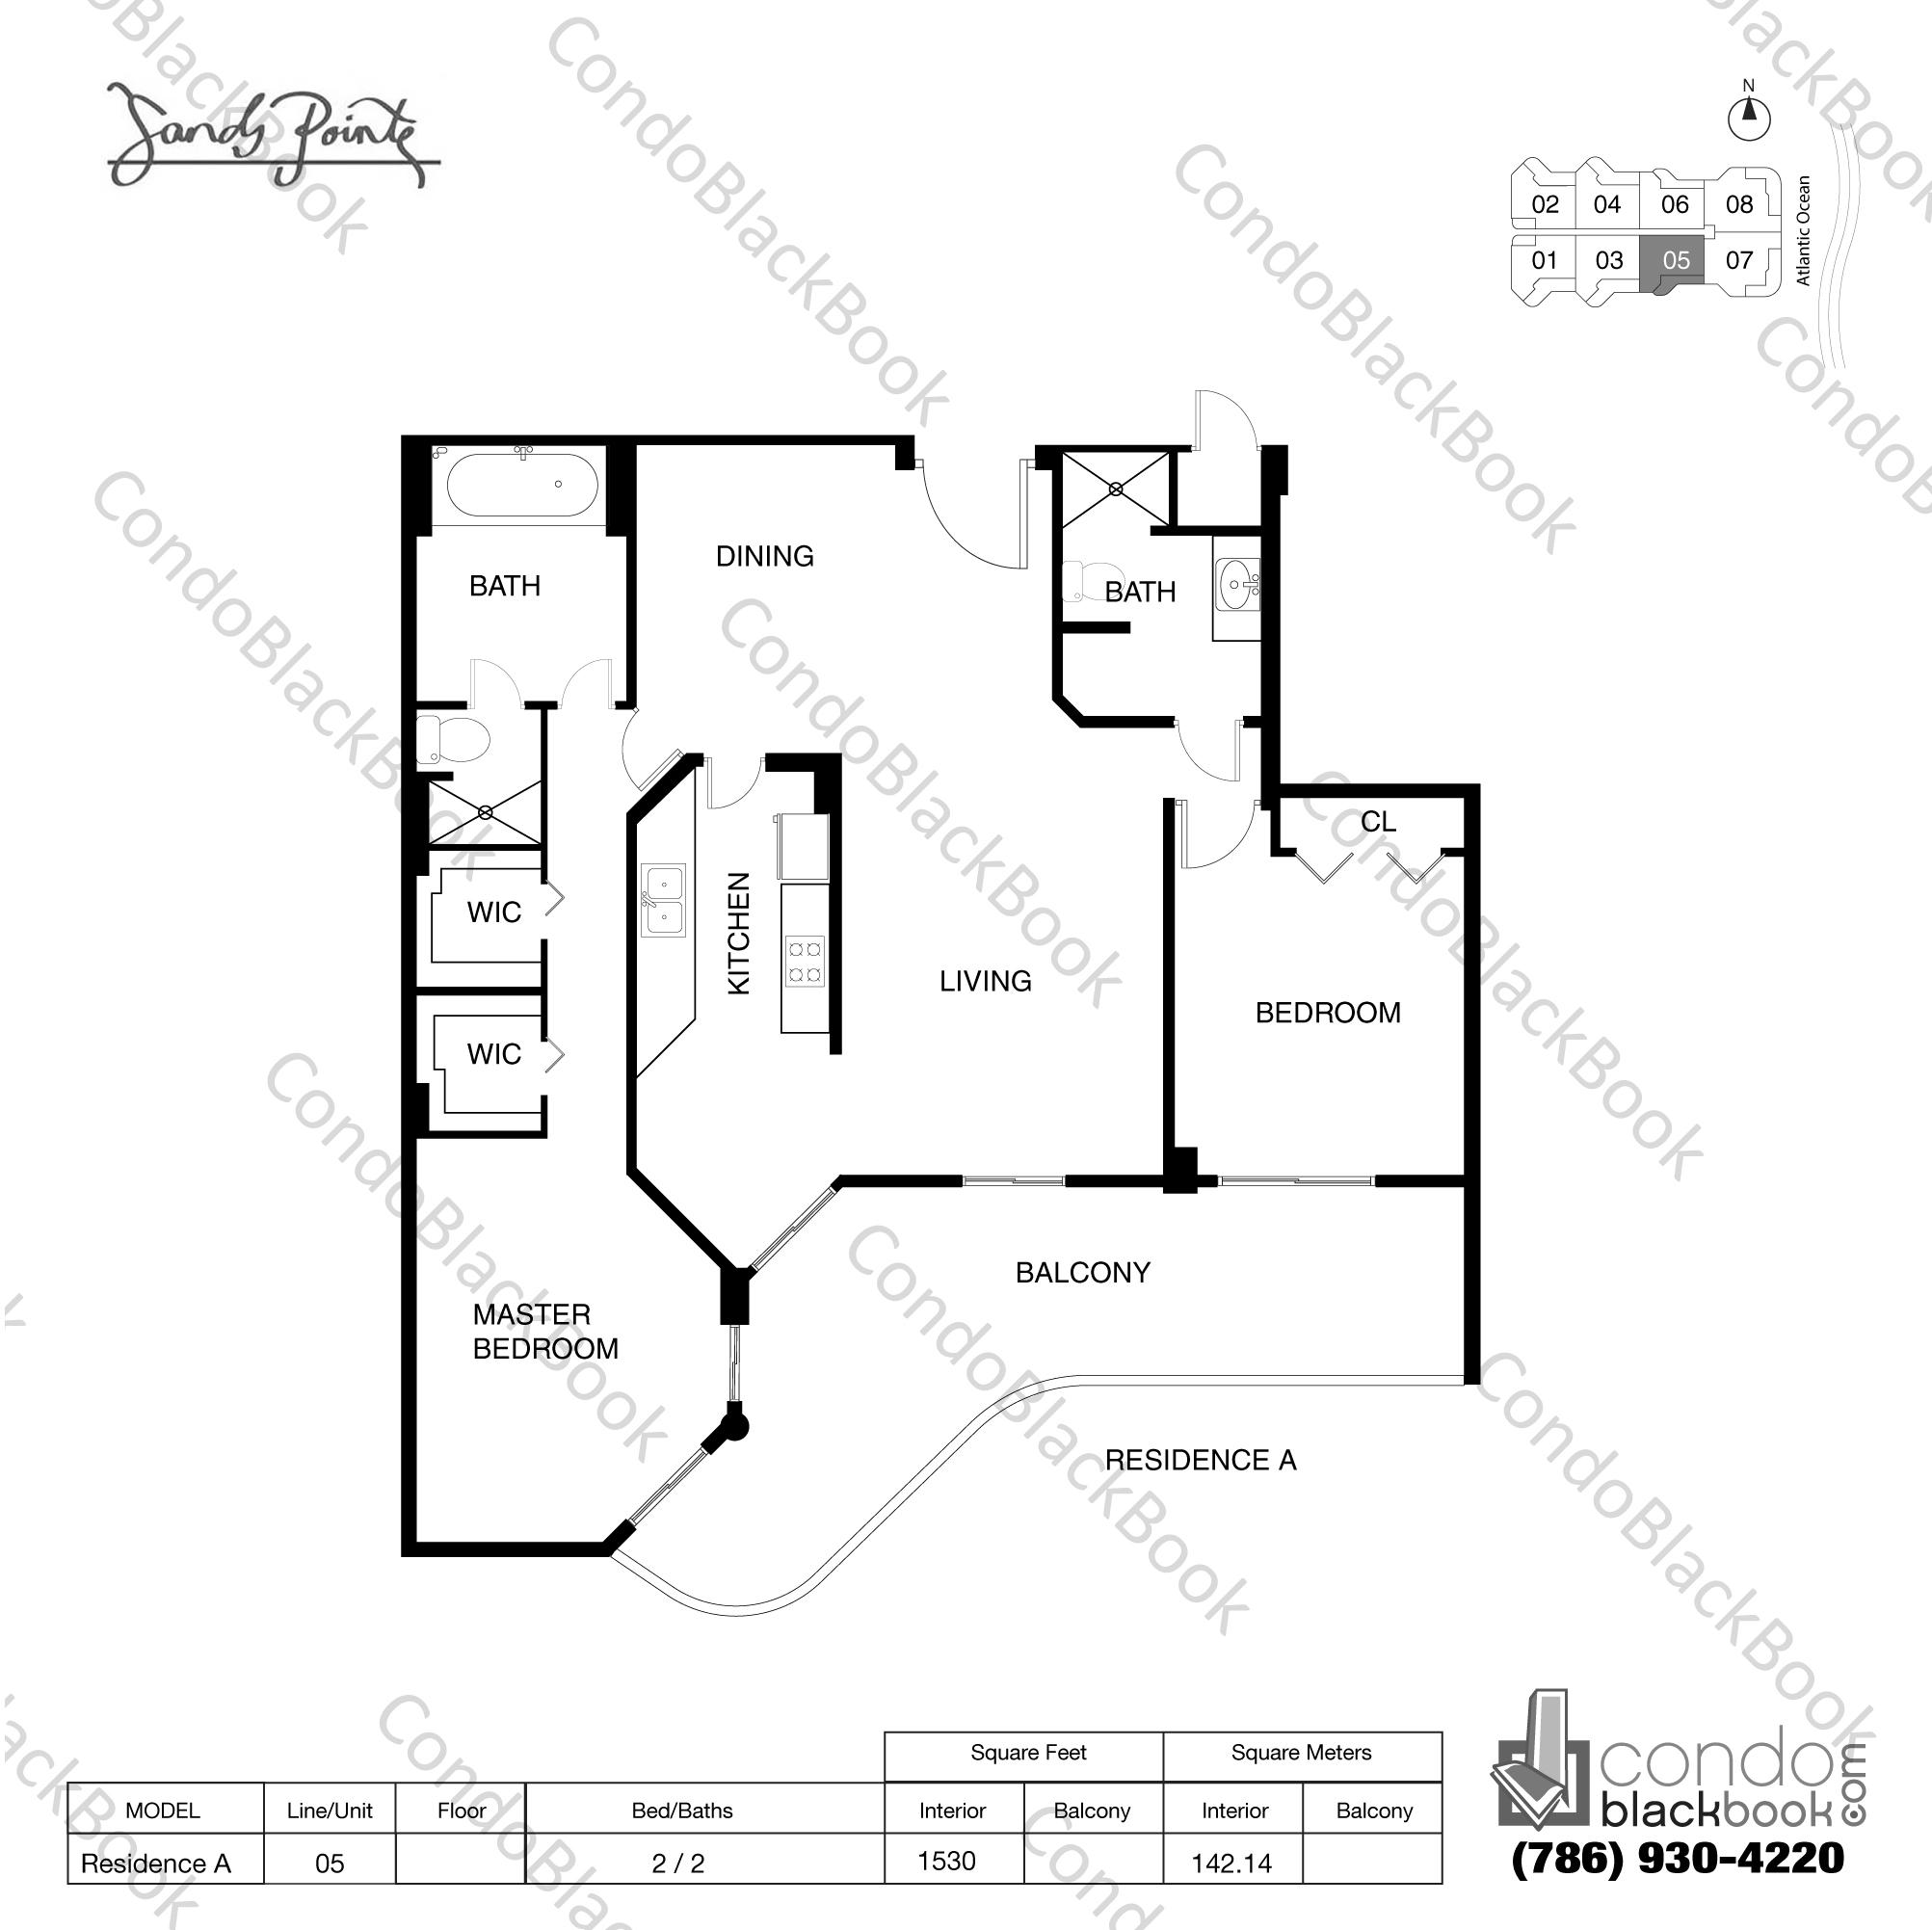 Floor plan for Sands Pointe Sunny Isles Beach, model Residence A, line 05, 2 / 2 bedrooms, 1520 sq ft